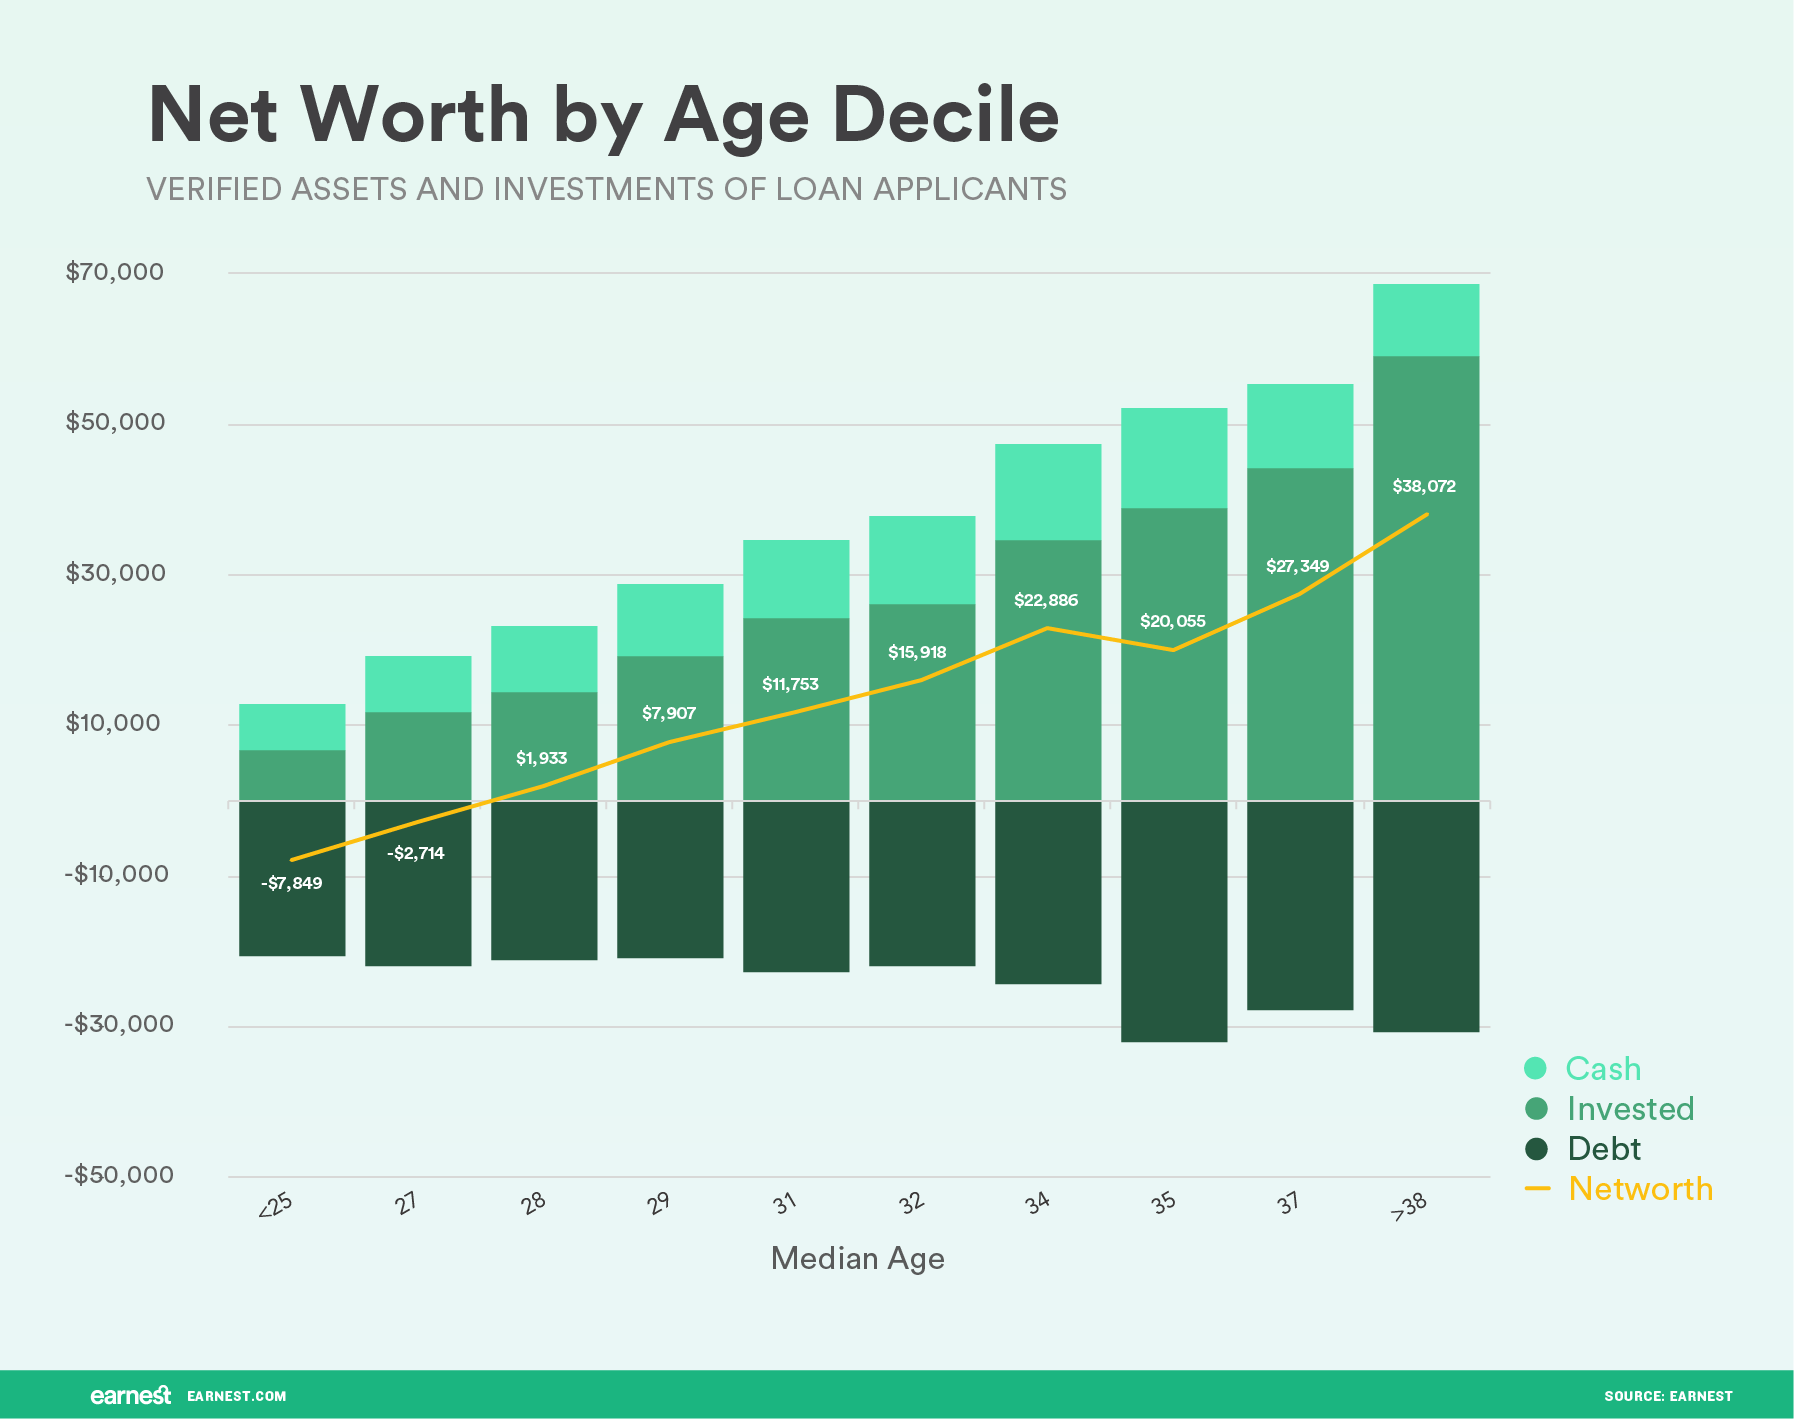 net worth by age decile